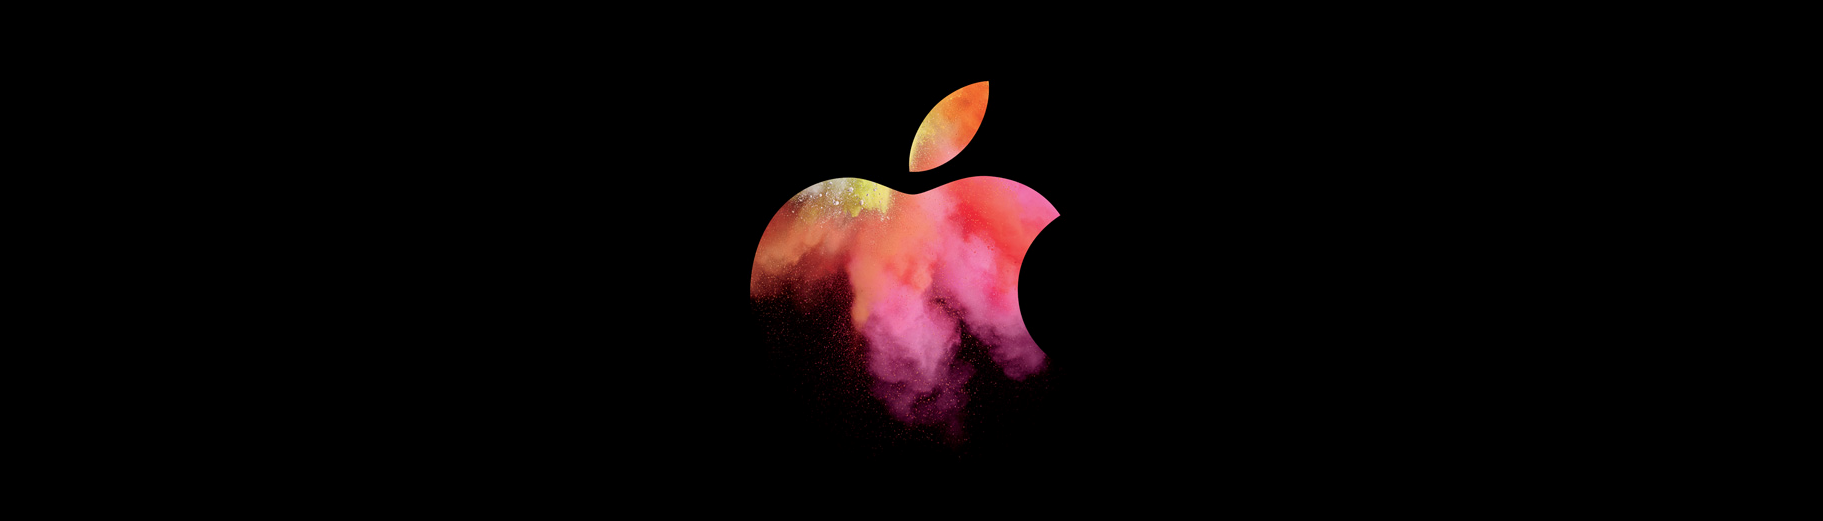 apple-event-october